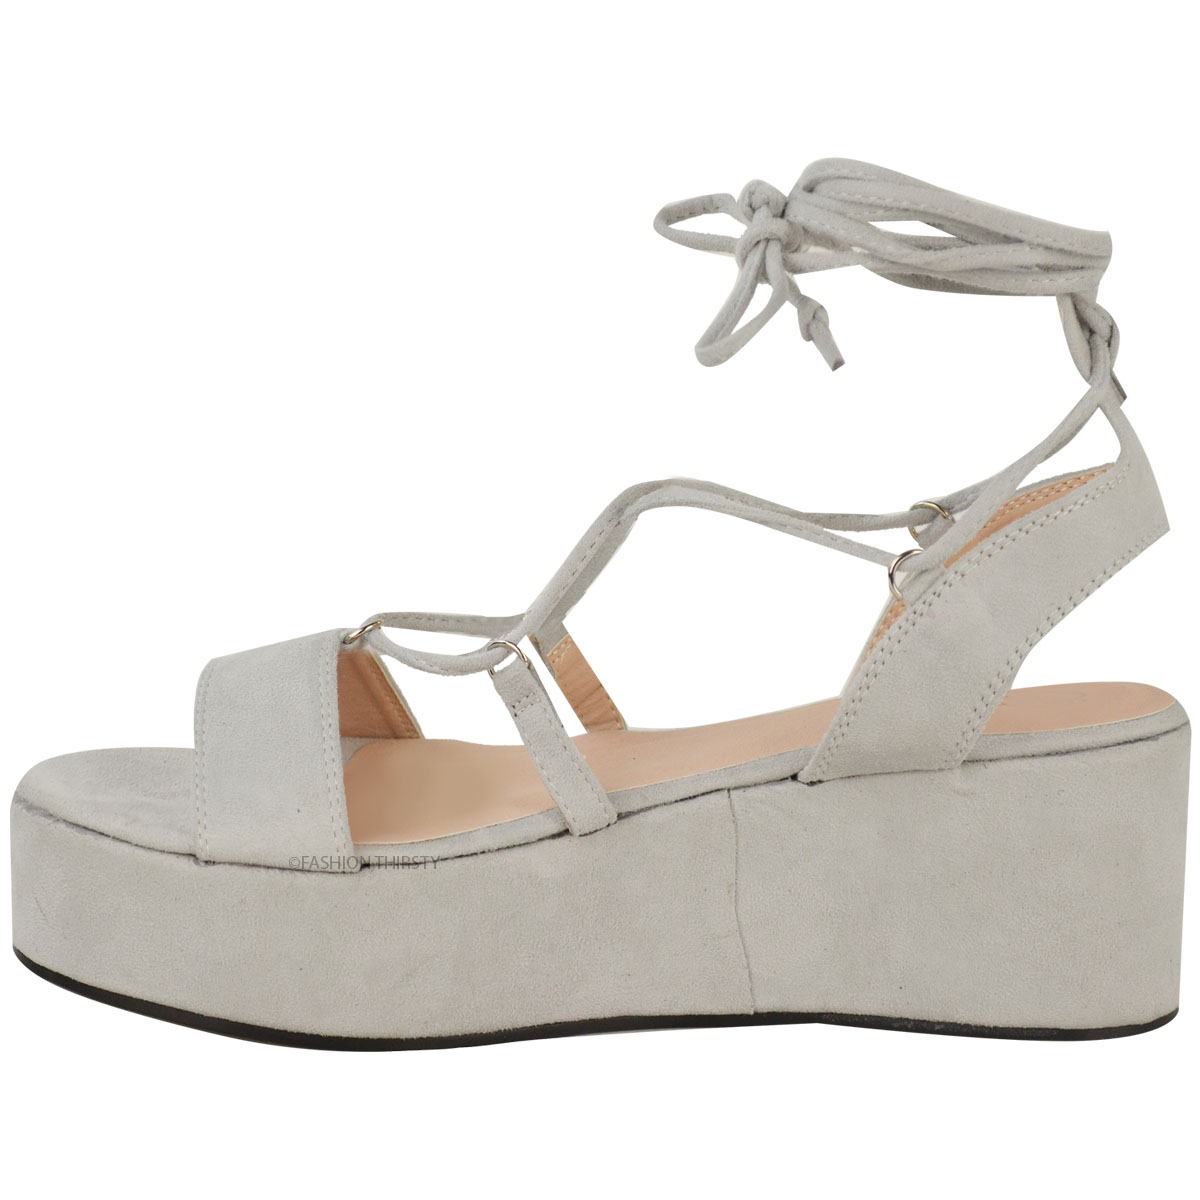 new womens low wedge platform sandals strappy